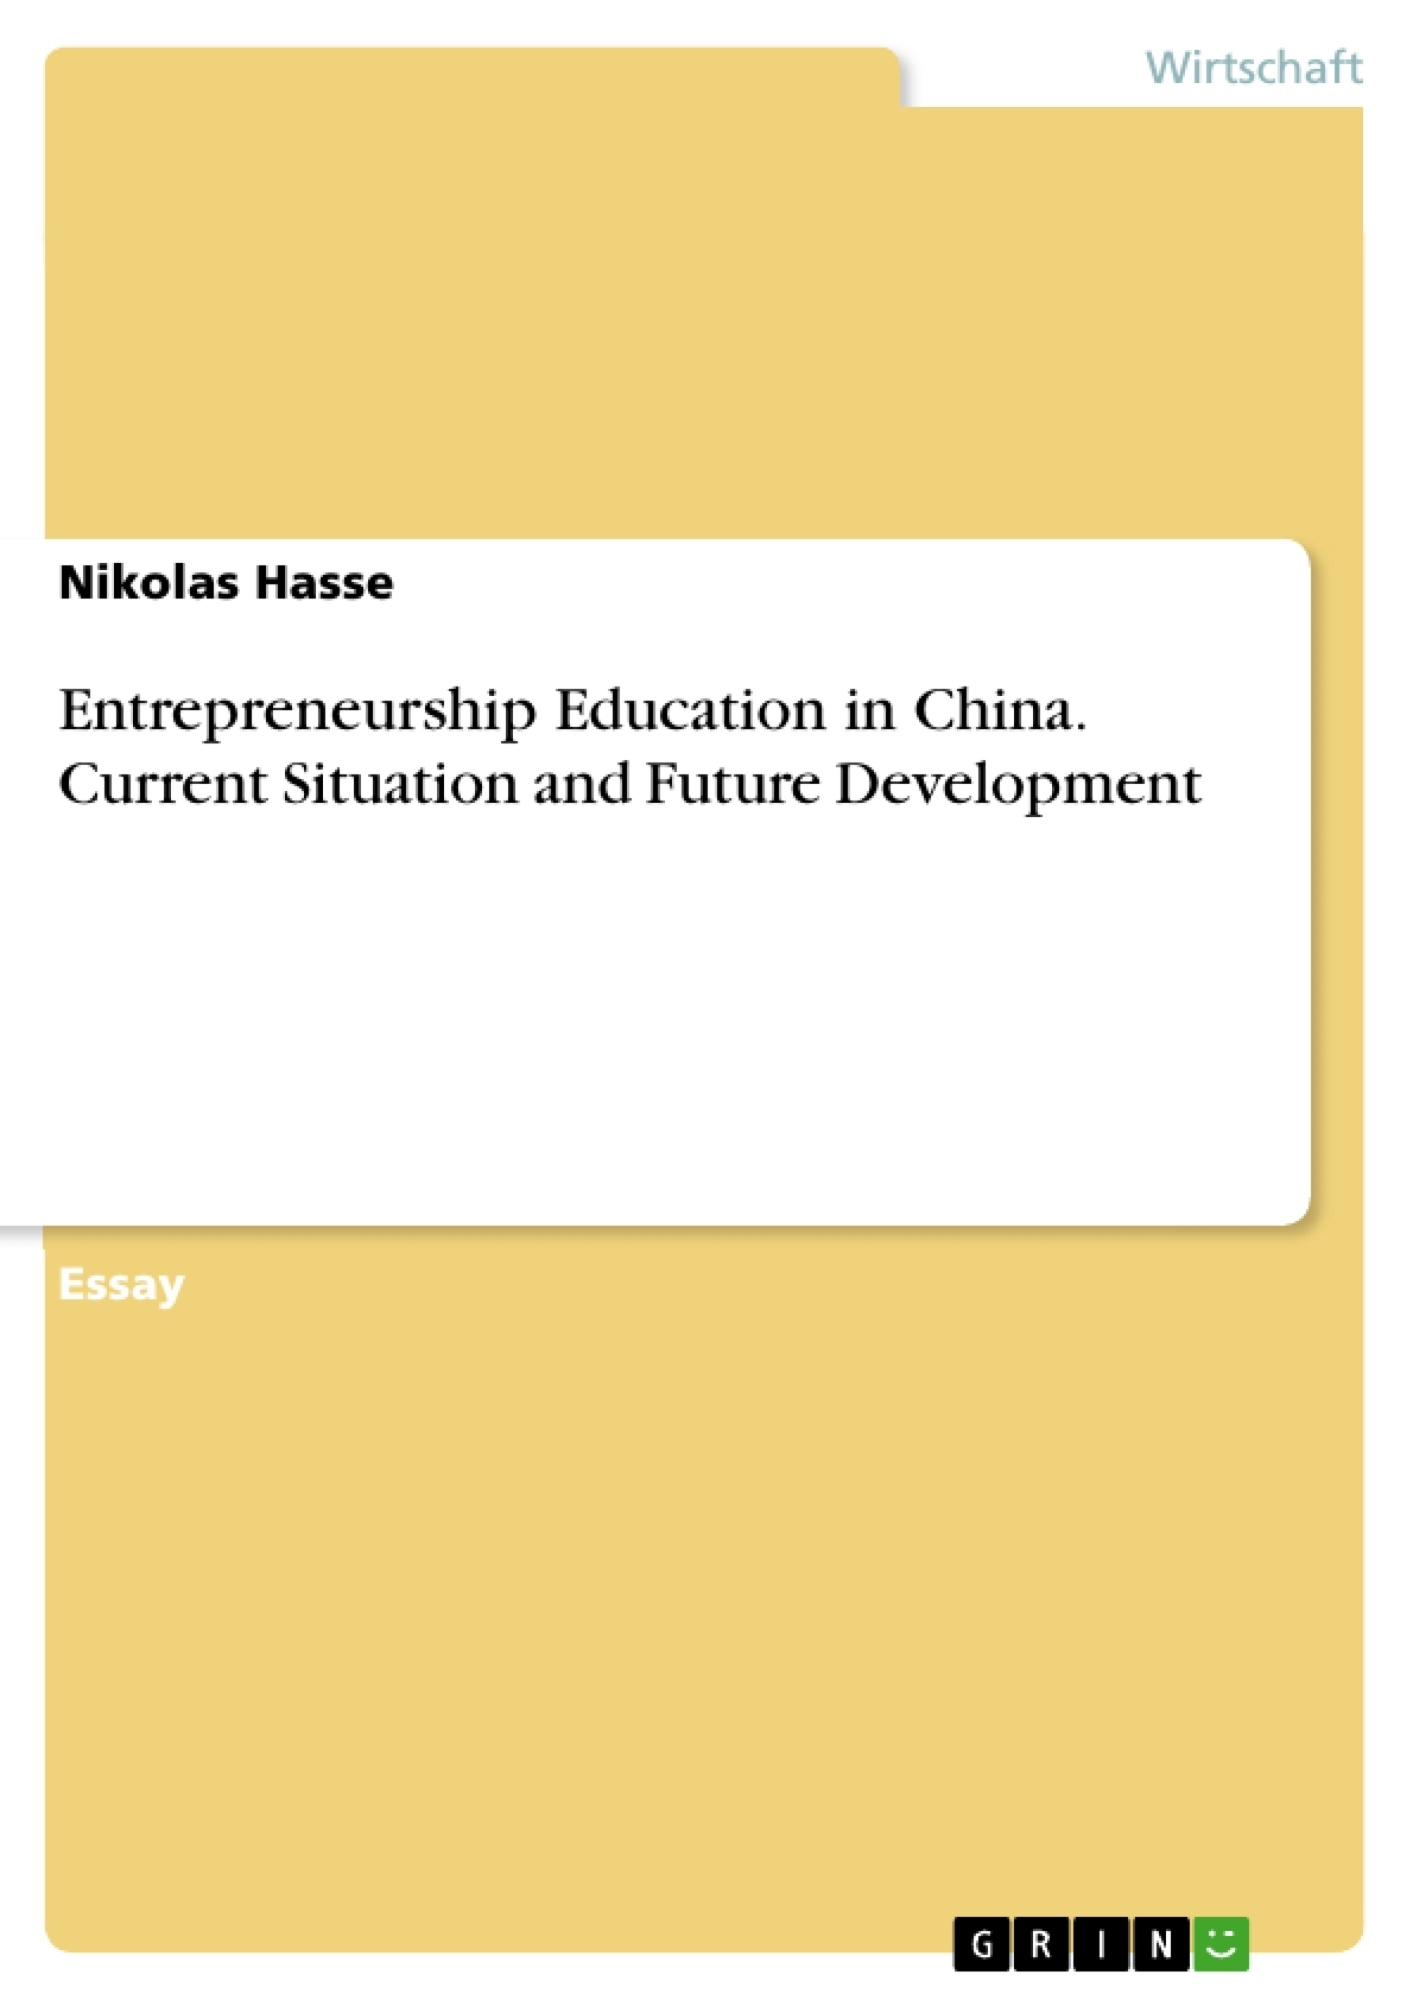 Titel: Entrepreneurship Education in China. Current Situation and Future Development